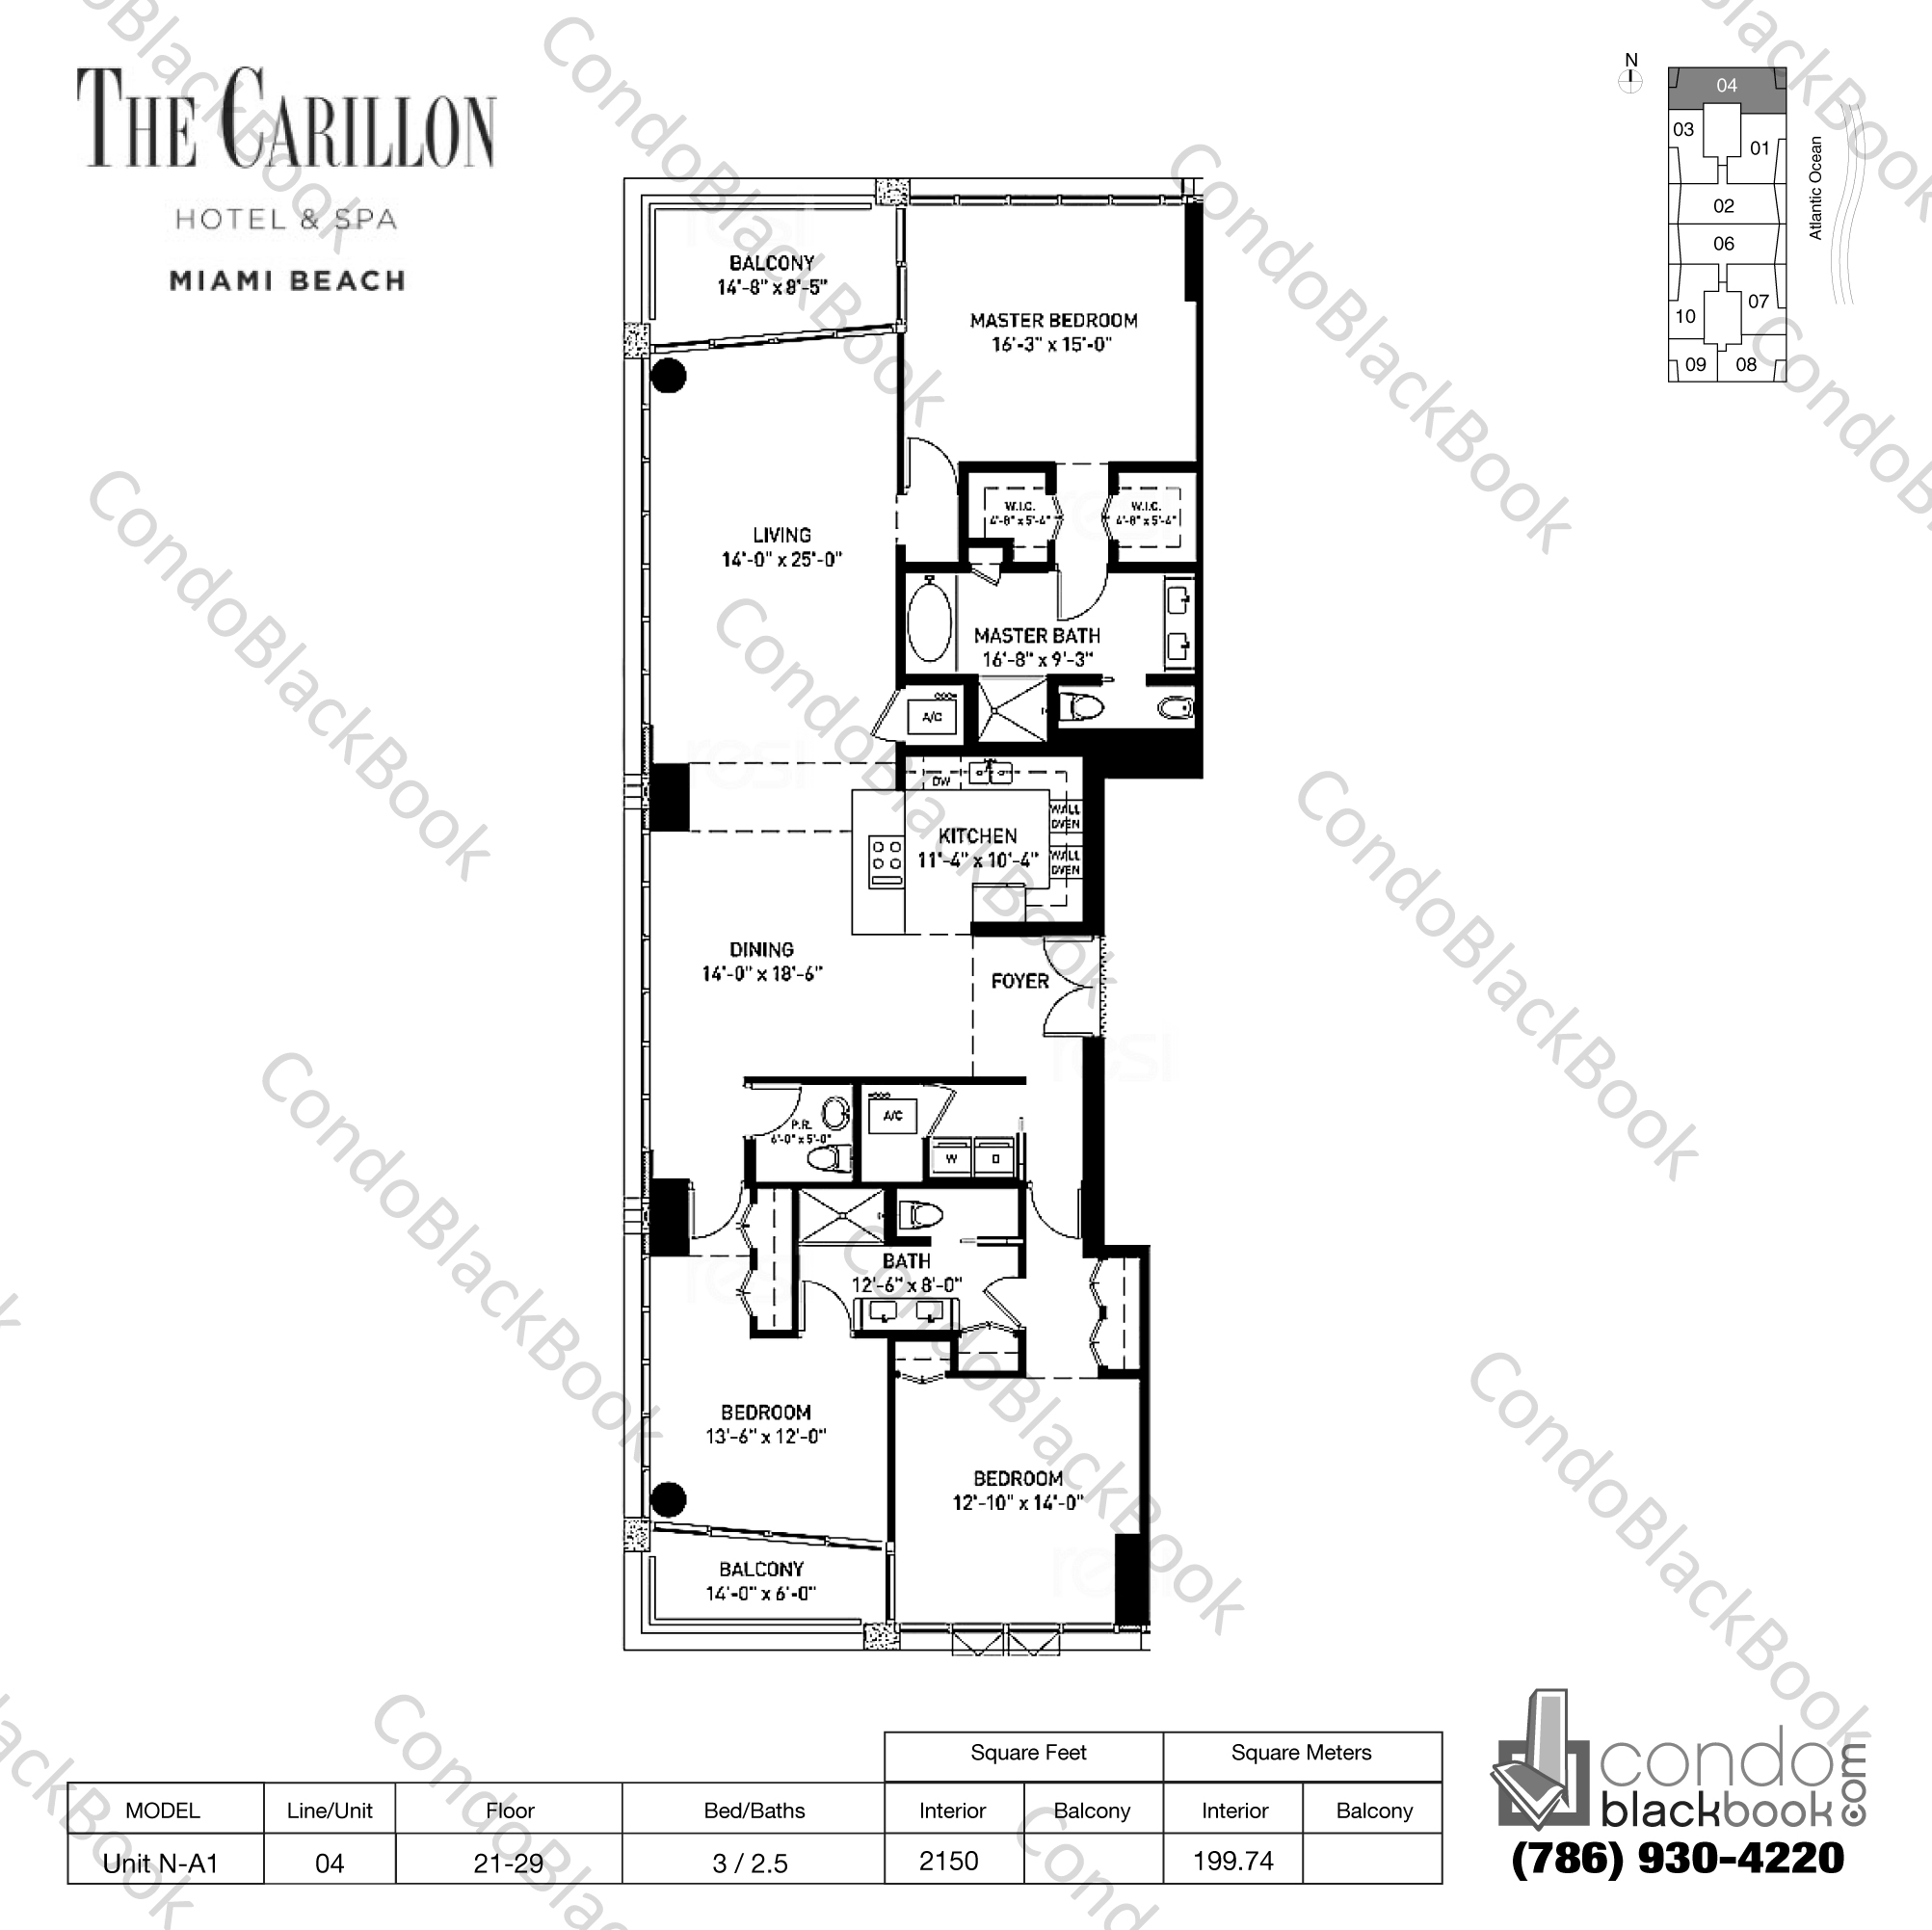 Floor plan for Carillon Condo North Tower North Beach Miami Beach, model Unit N-A1, line 04, 3 / 2.5 bedrooms, 2150 sq ft